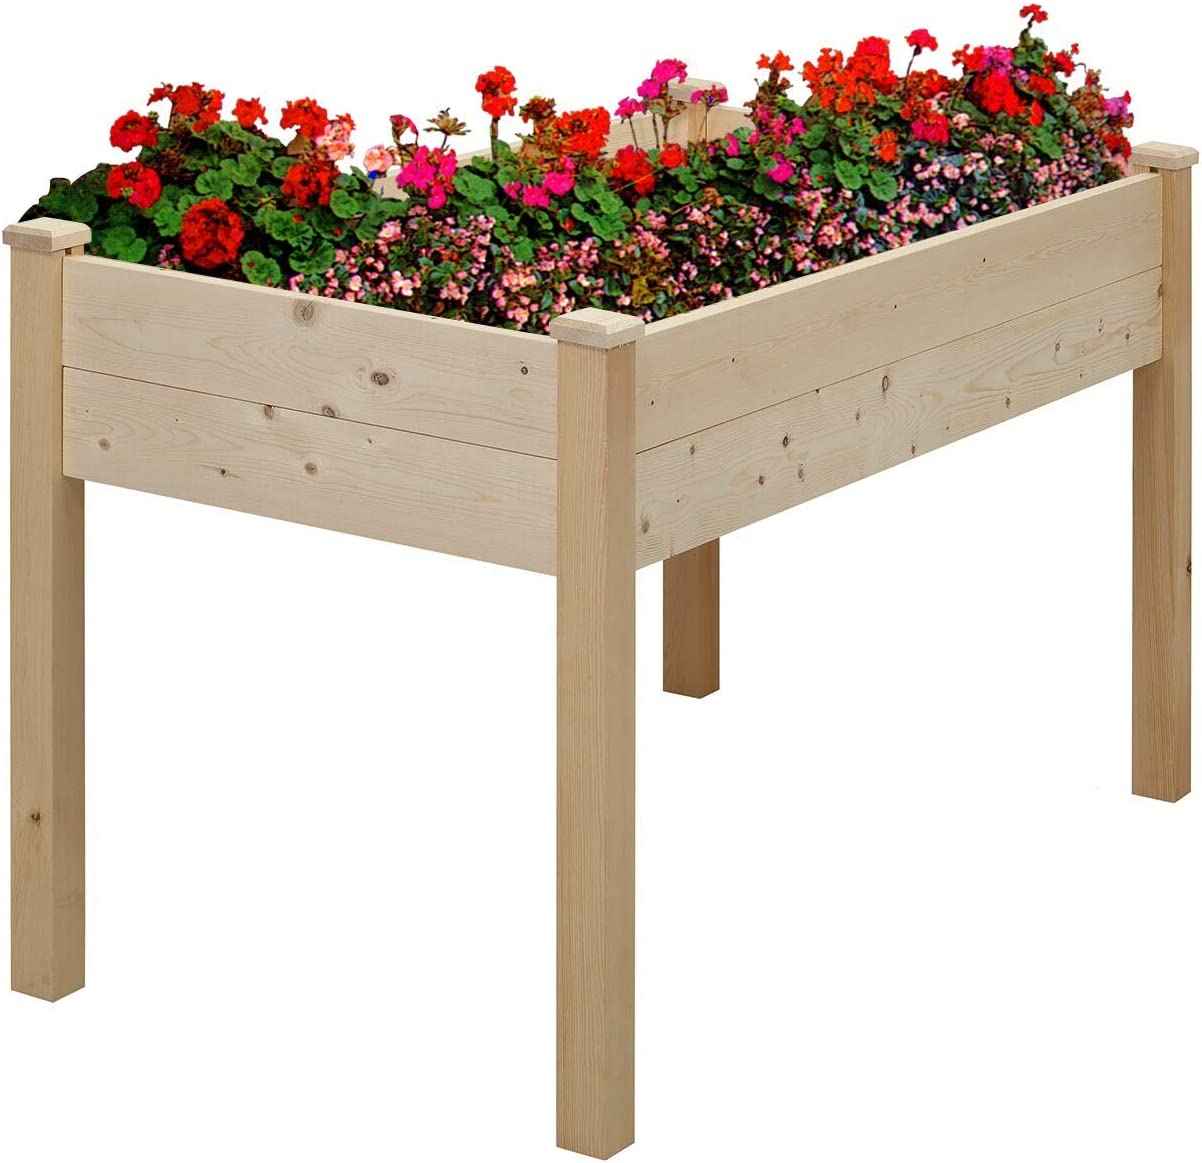 "Raised Garden Bed Planter Box with Legs, Wood, Tool-Free, 48"" x 24"""